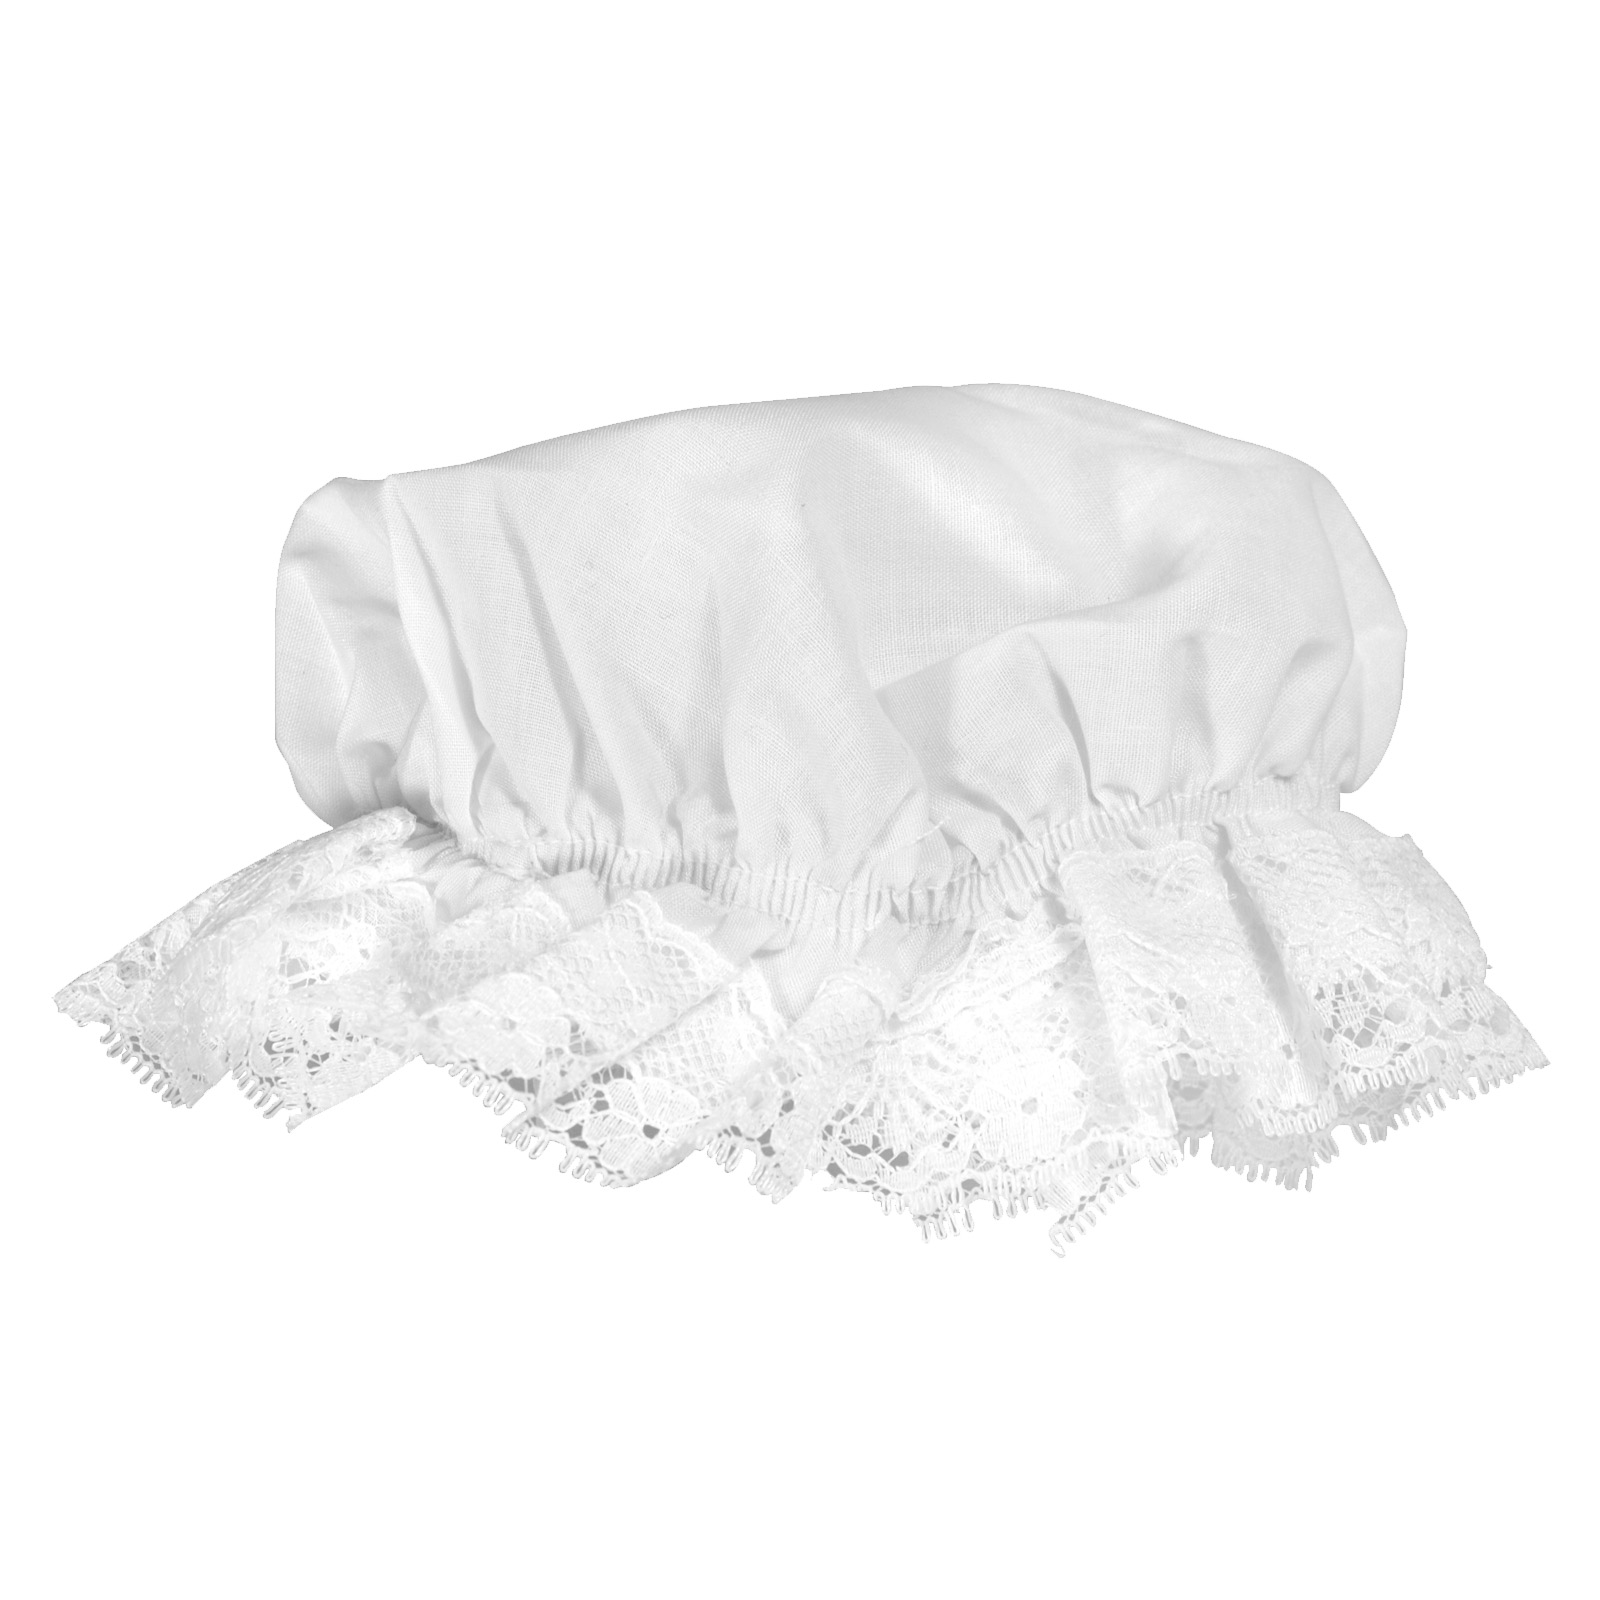 ST DAVIDS DAY GIRLS MOP CAPS EXTRA LARGE